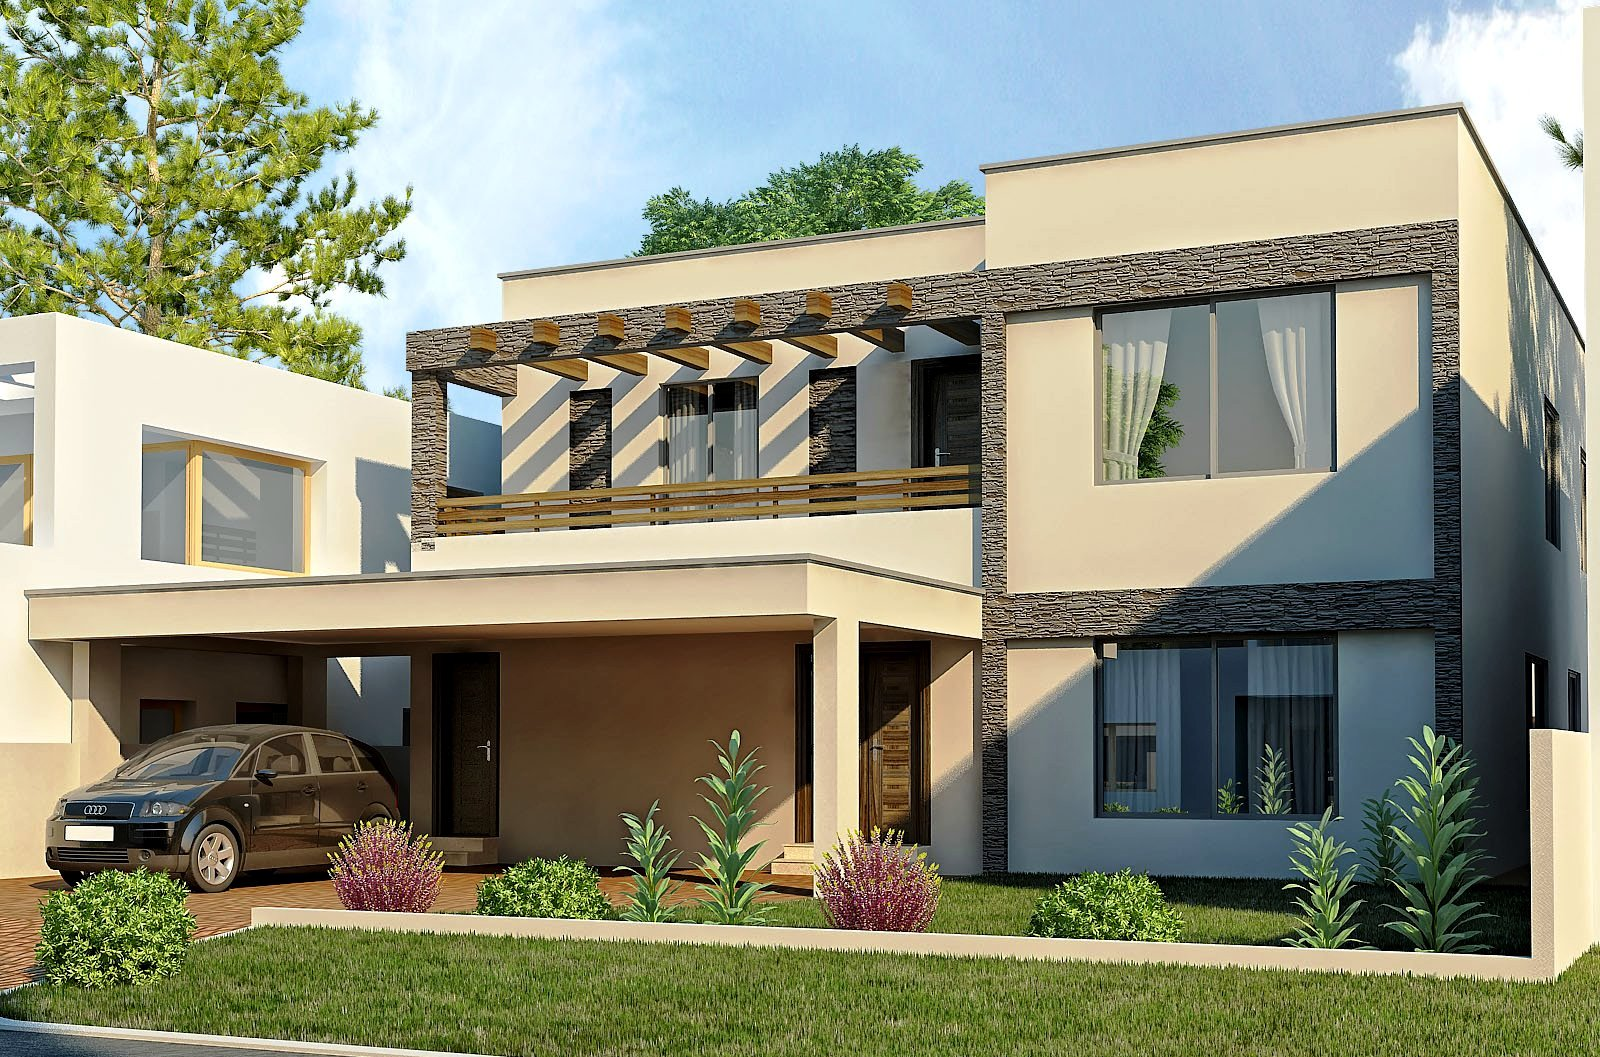 New home designs latest modern homes exterior designs views for Best house designs